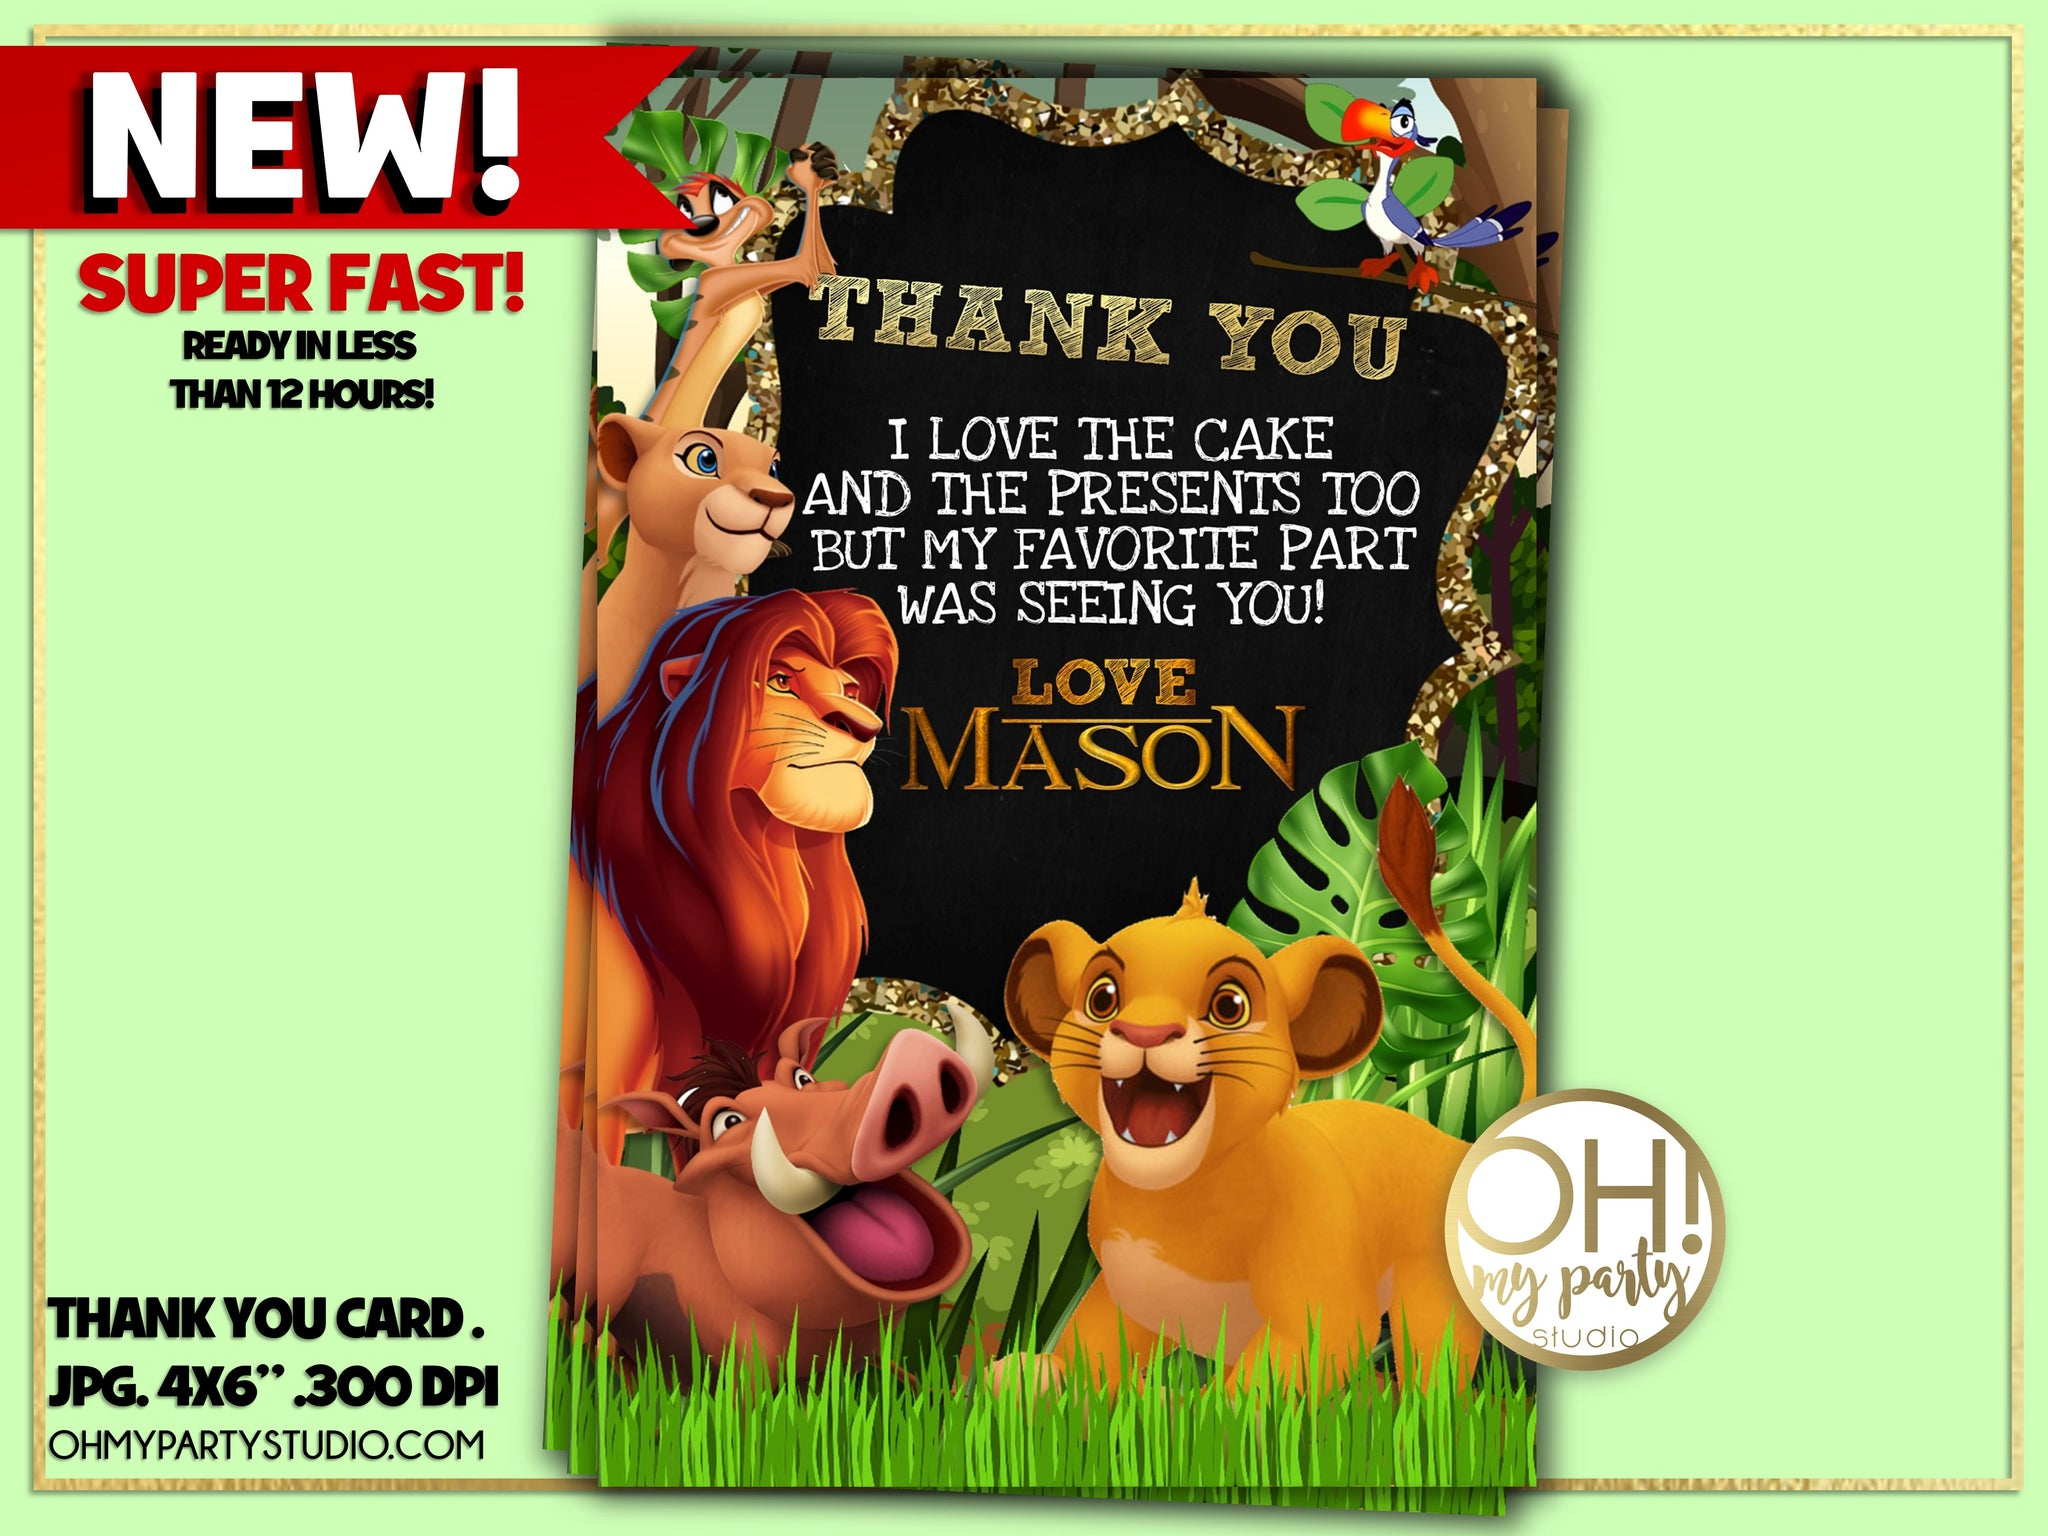 LION KING THANK YOU CARD, LION KING BIRTHDAY PARTY, LION KING PARTY SUPPLIES, LION KING PARTY PRINTABLES, LION KING PARTY , LION KING BIRTHDAY, LION KING PARTY IDEAS, LION KING CARD